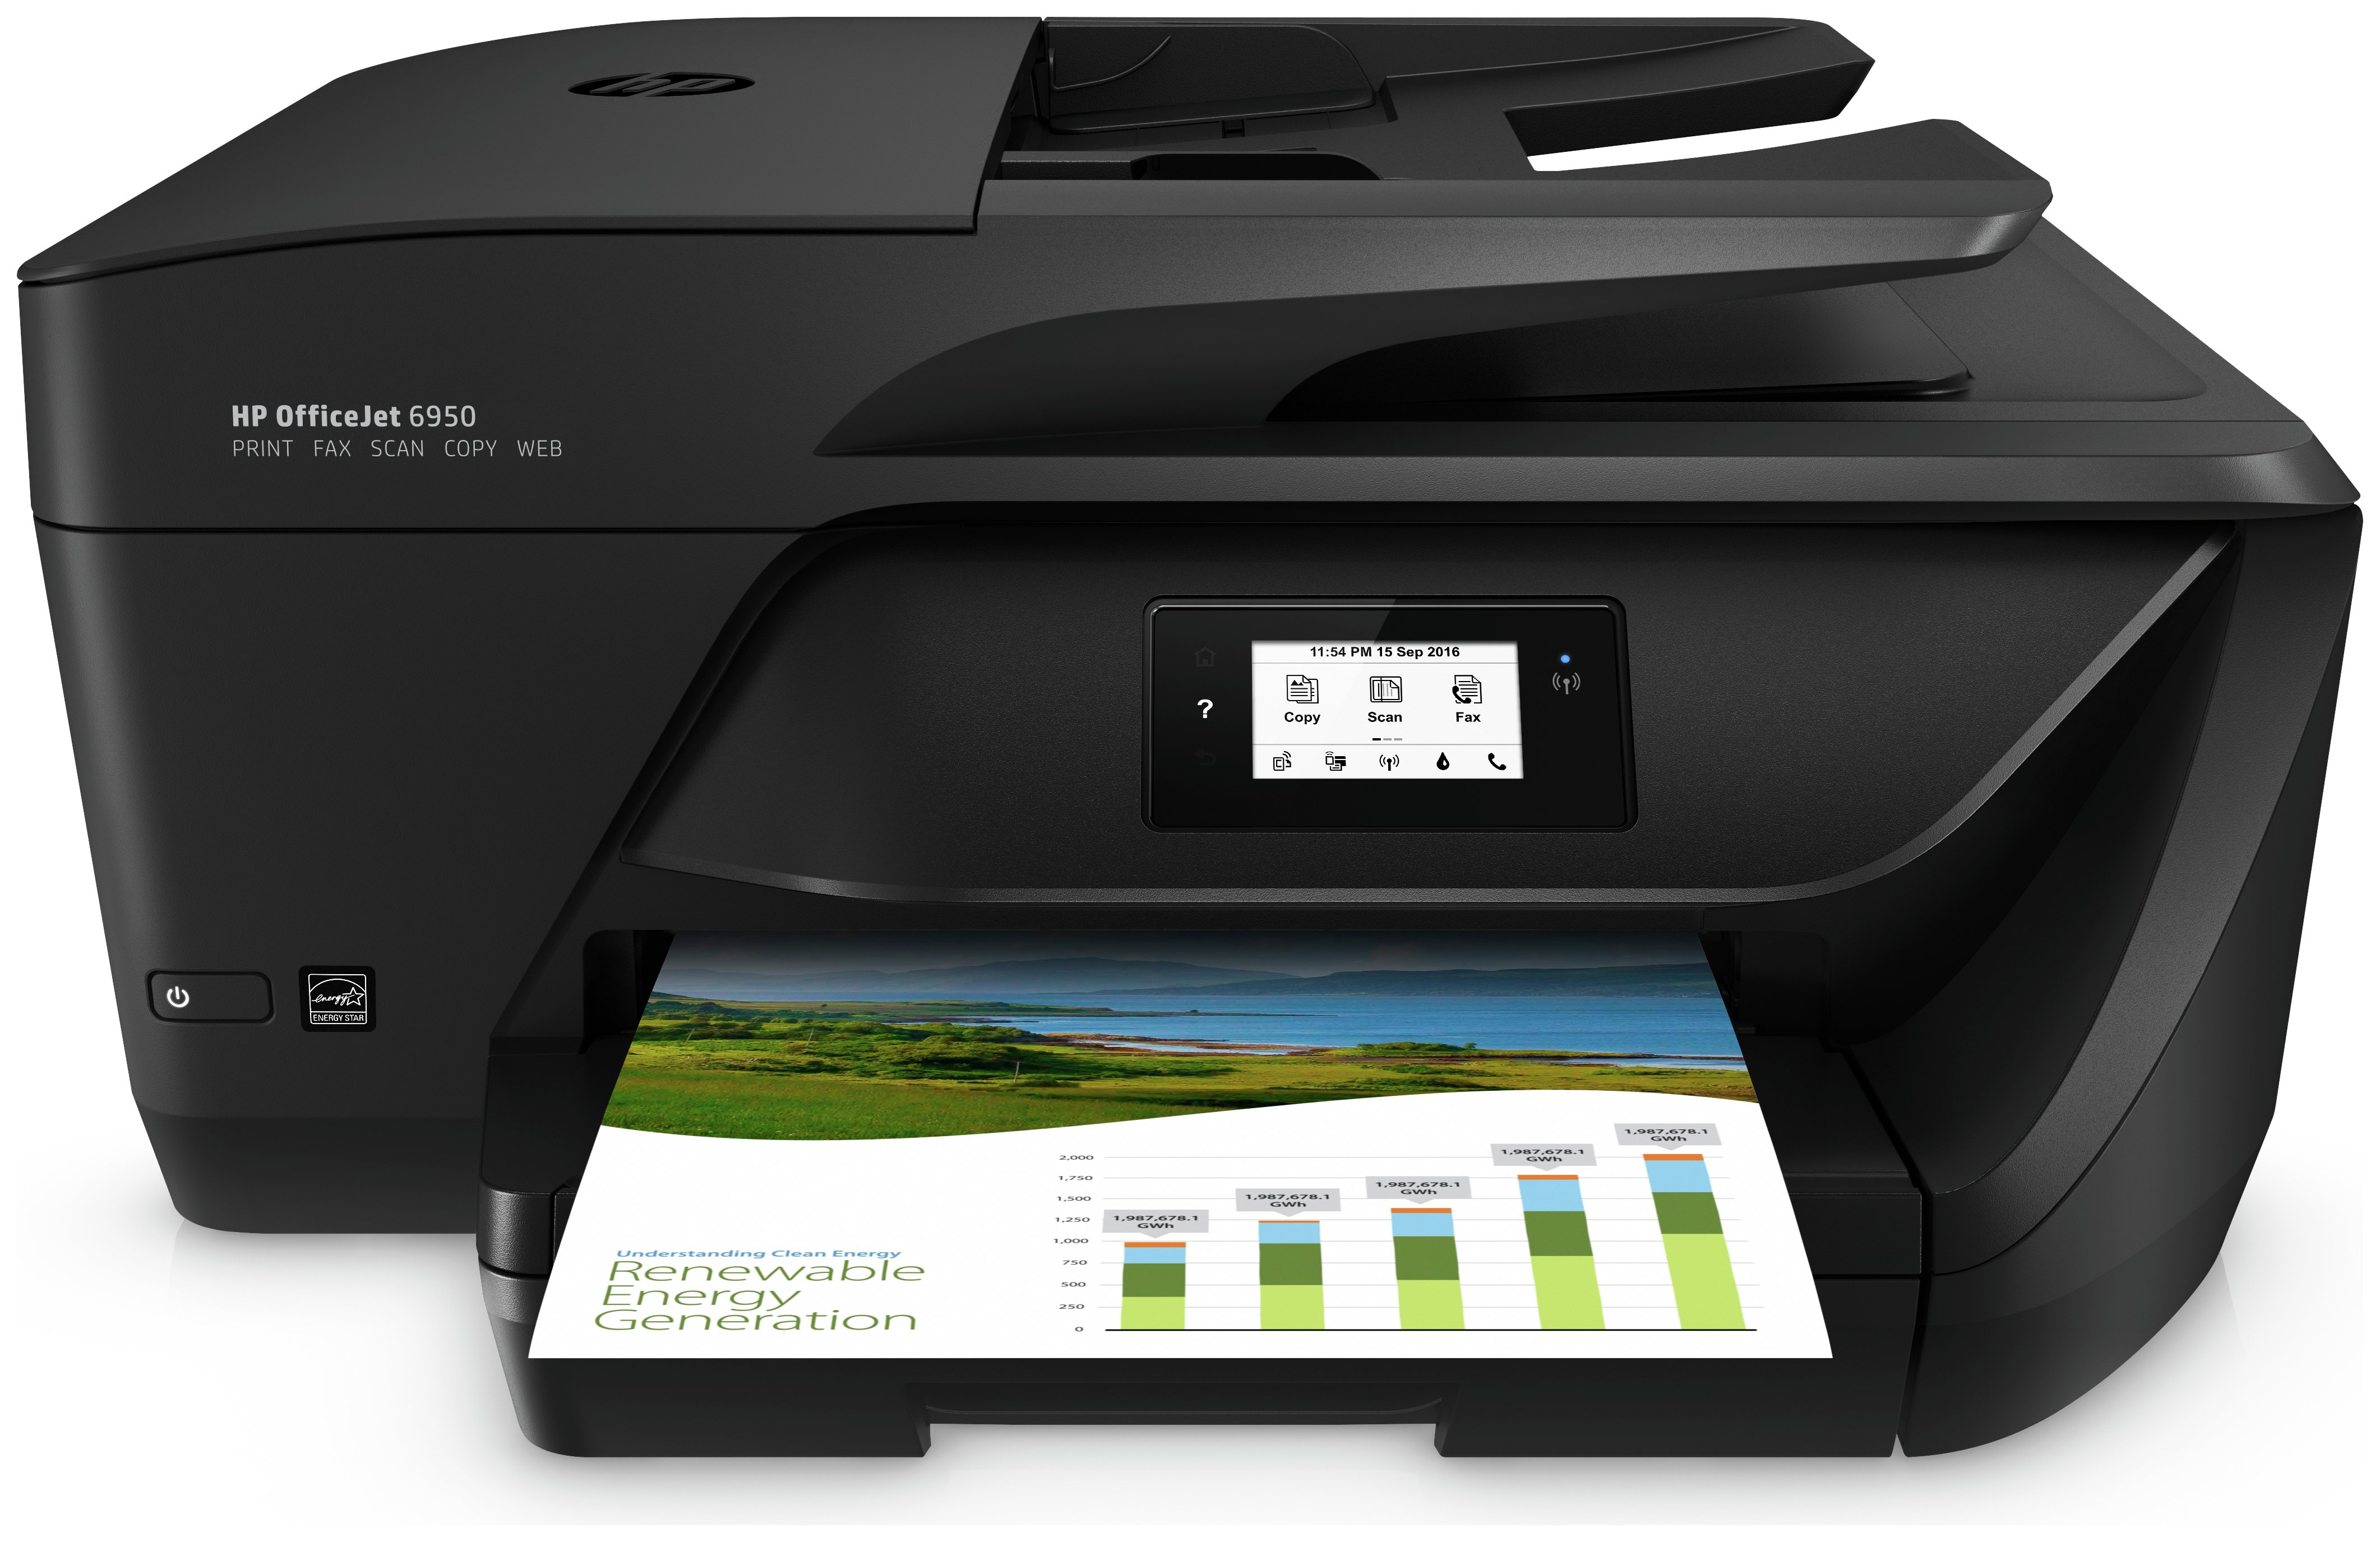 hp-officejet-6950-all-in-one-wi-printer-fax